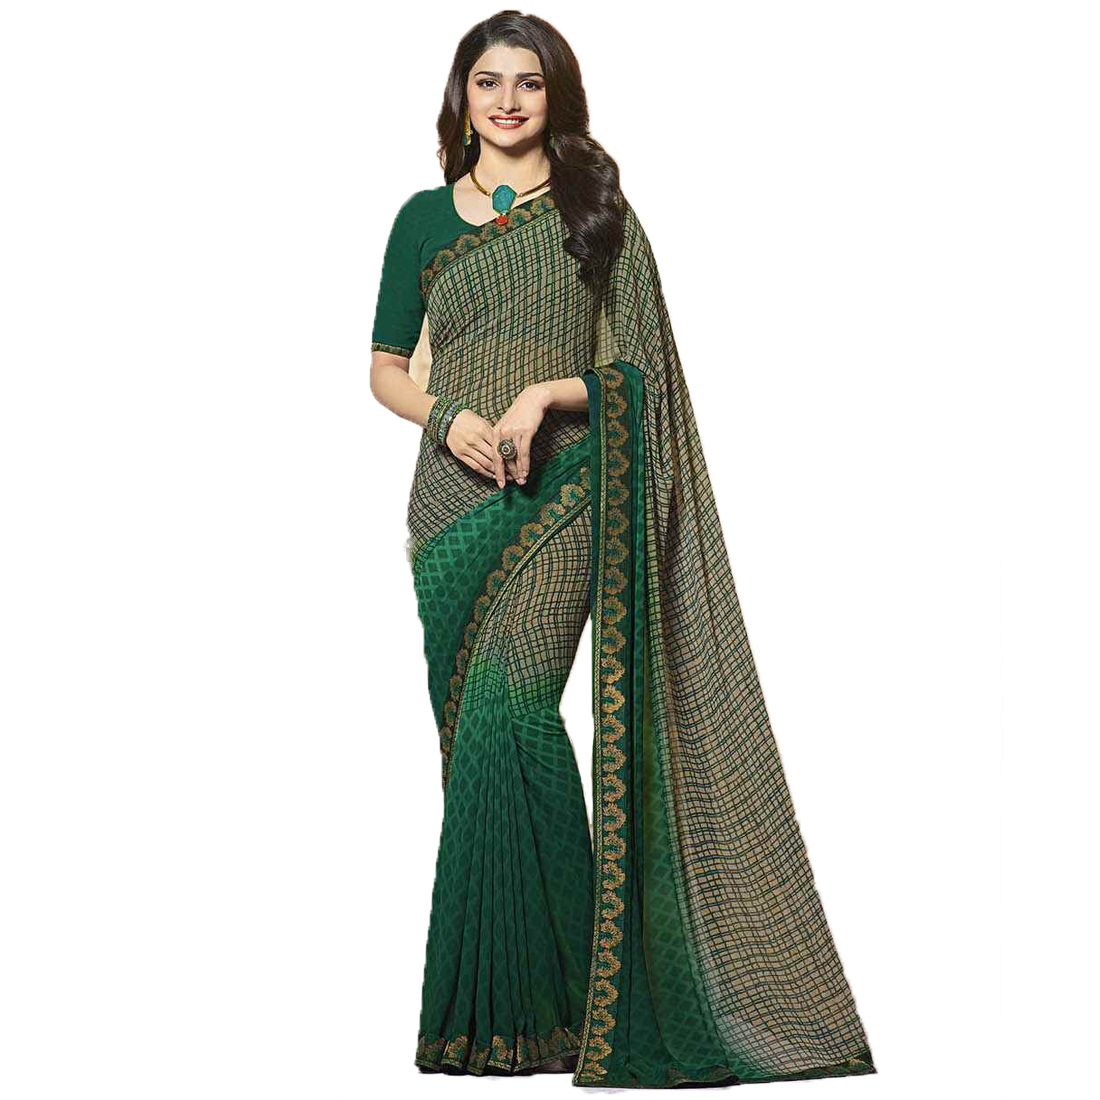 Indian Style Sarees New Arrivals Latest Women's Green Georgette Printed Saree With Blouse Bollywood Latest Designer